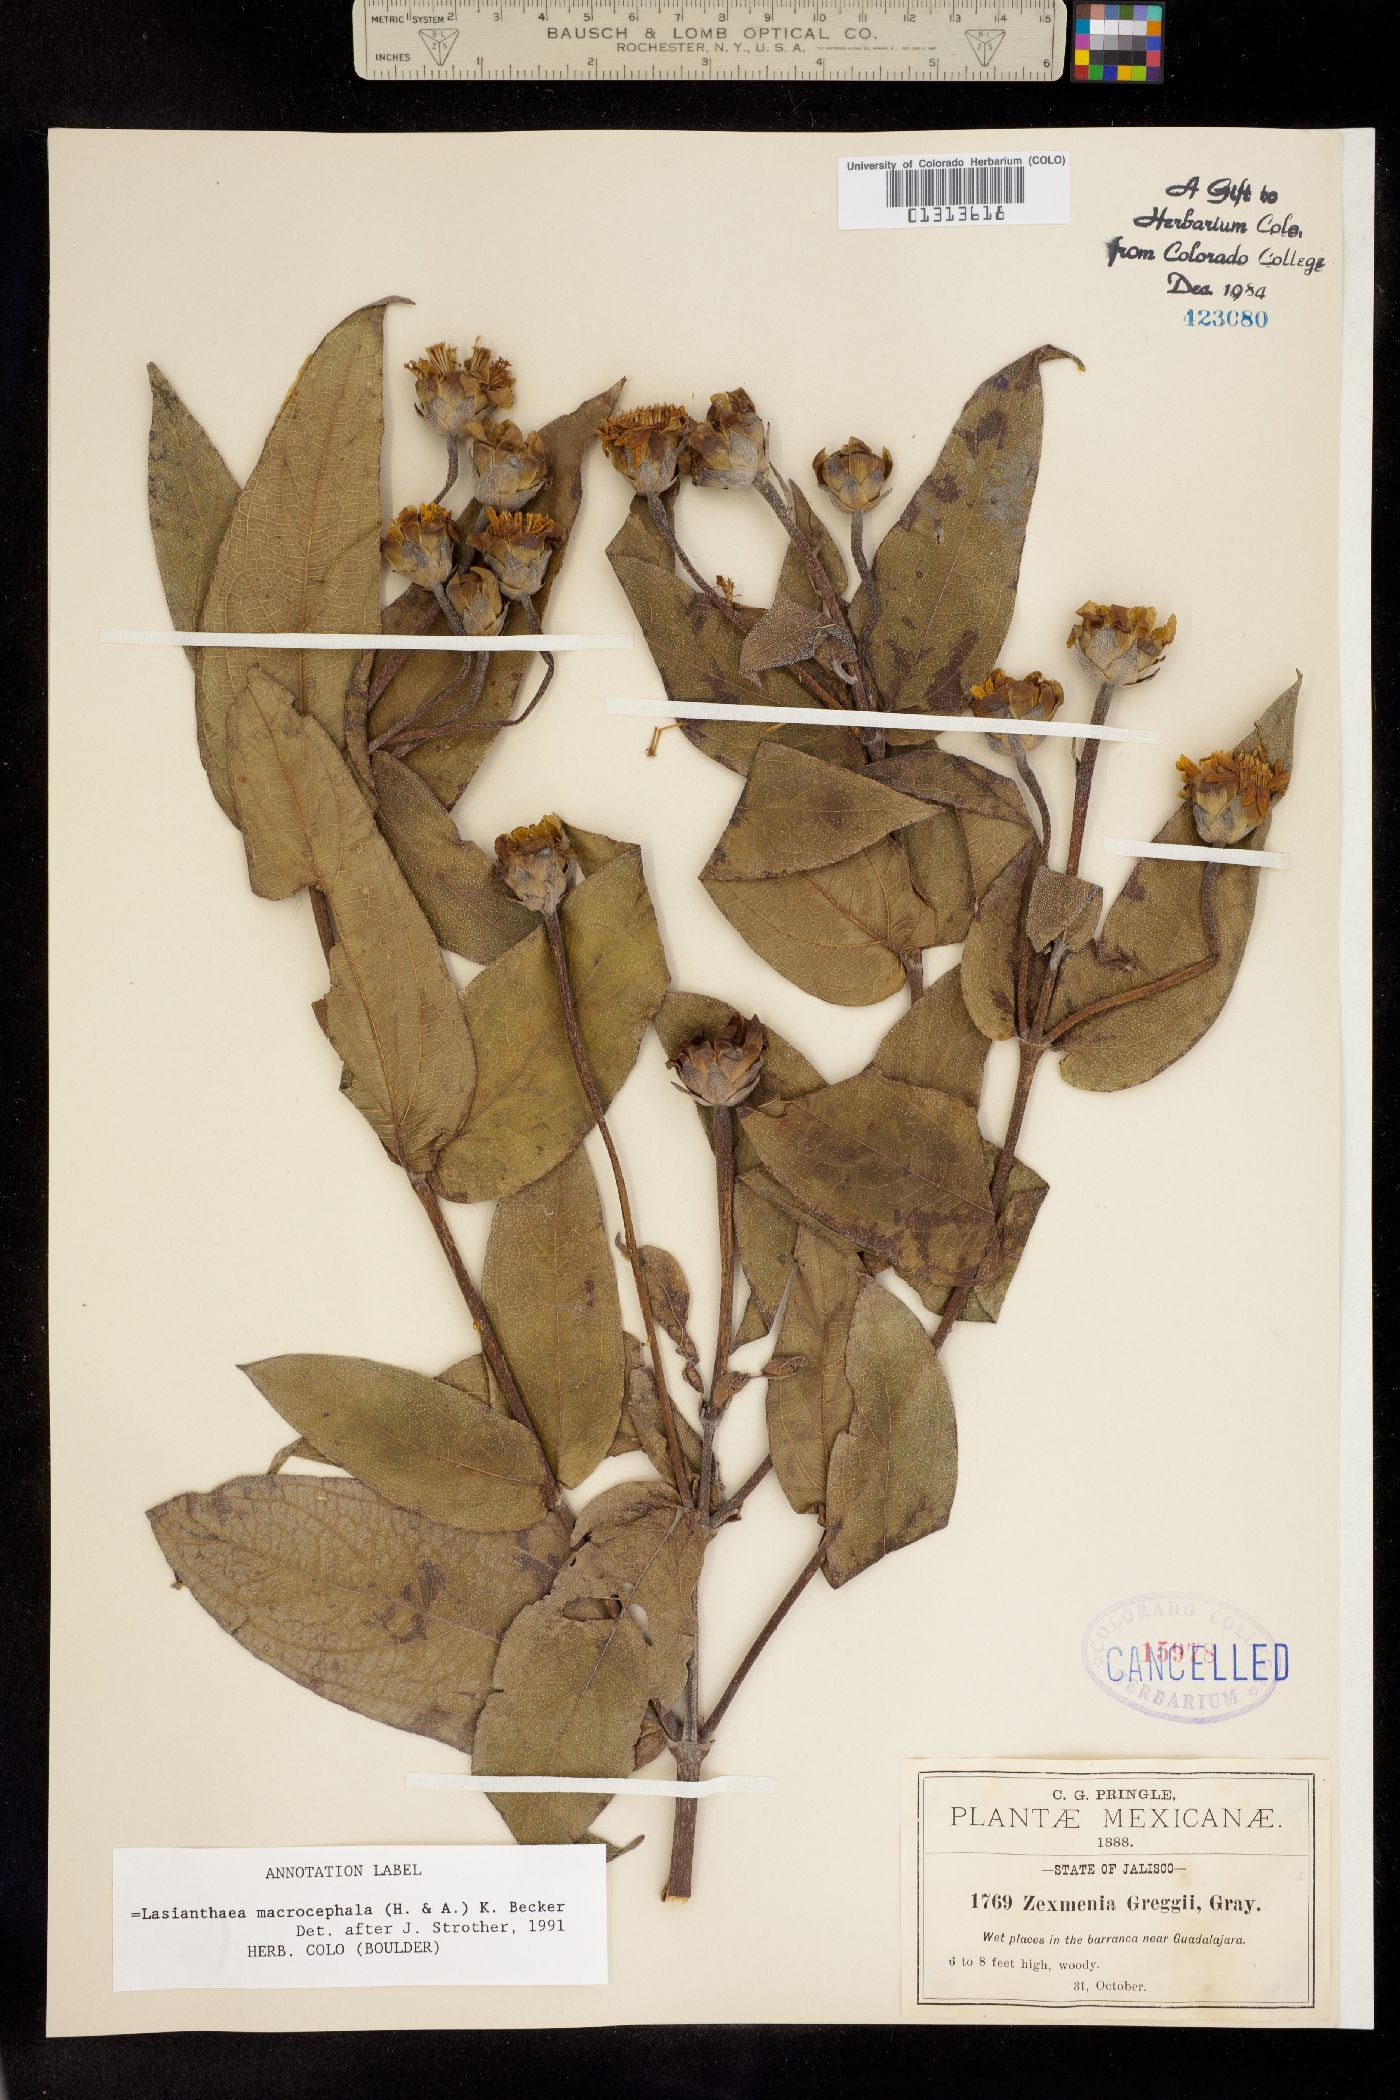 Today known as the Lasianthaea macrocephala, this flower was discovered by Ynés Mexía.